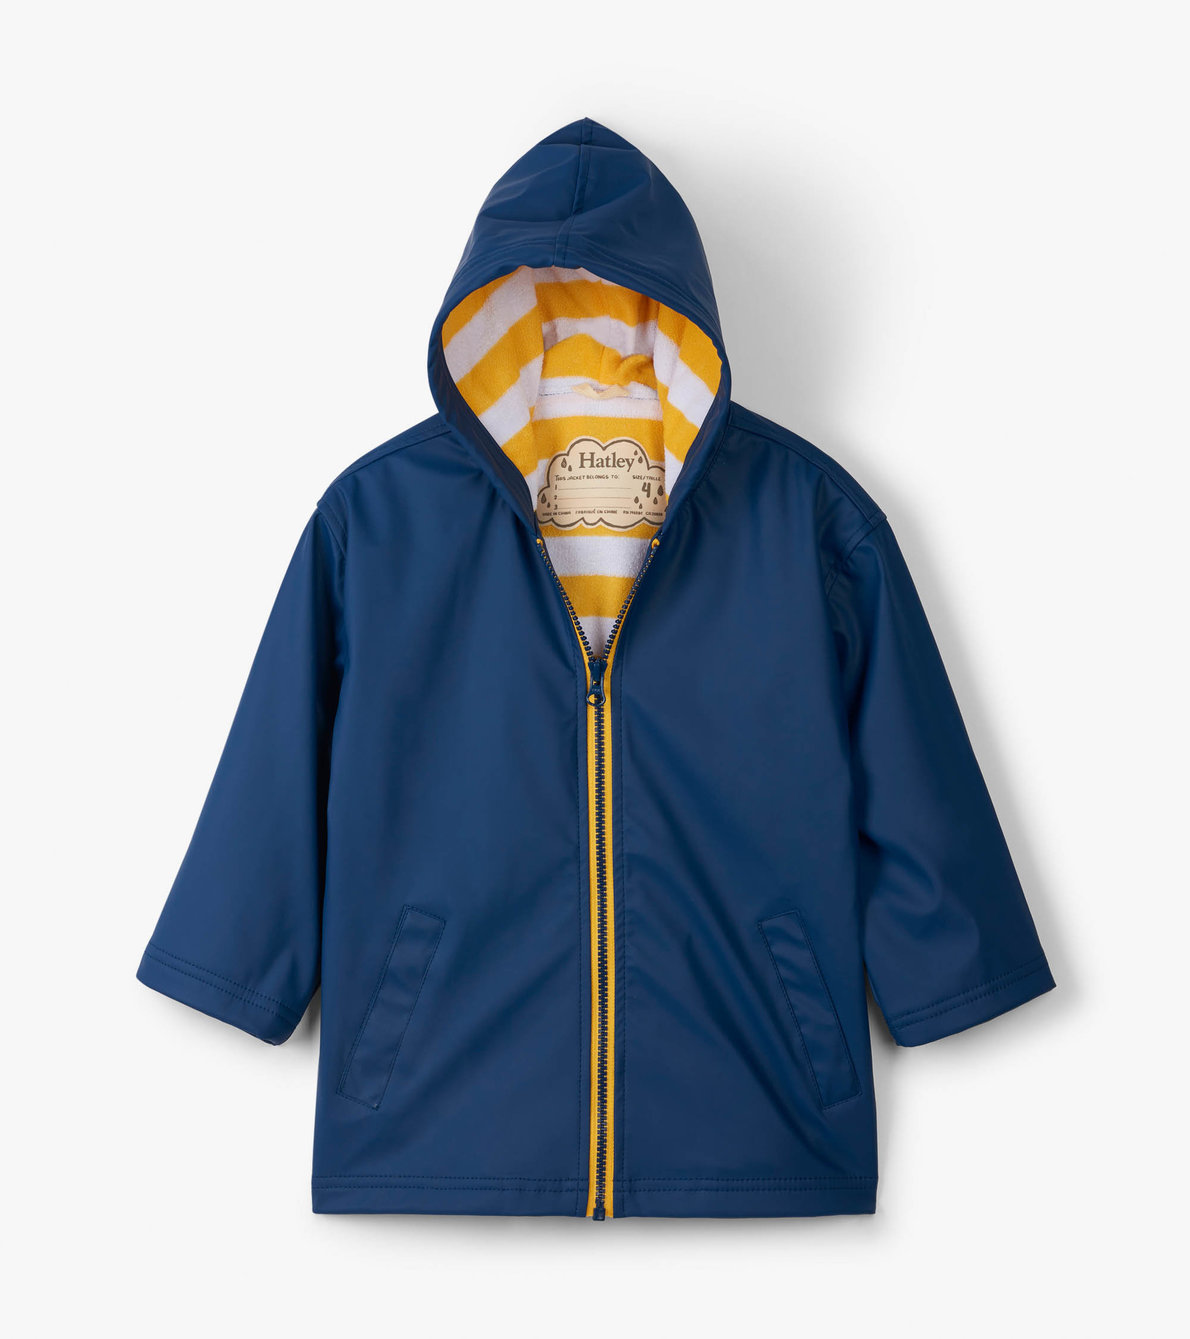 View larger image of Navy with Yellow Stripe Lining Splash Jacket